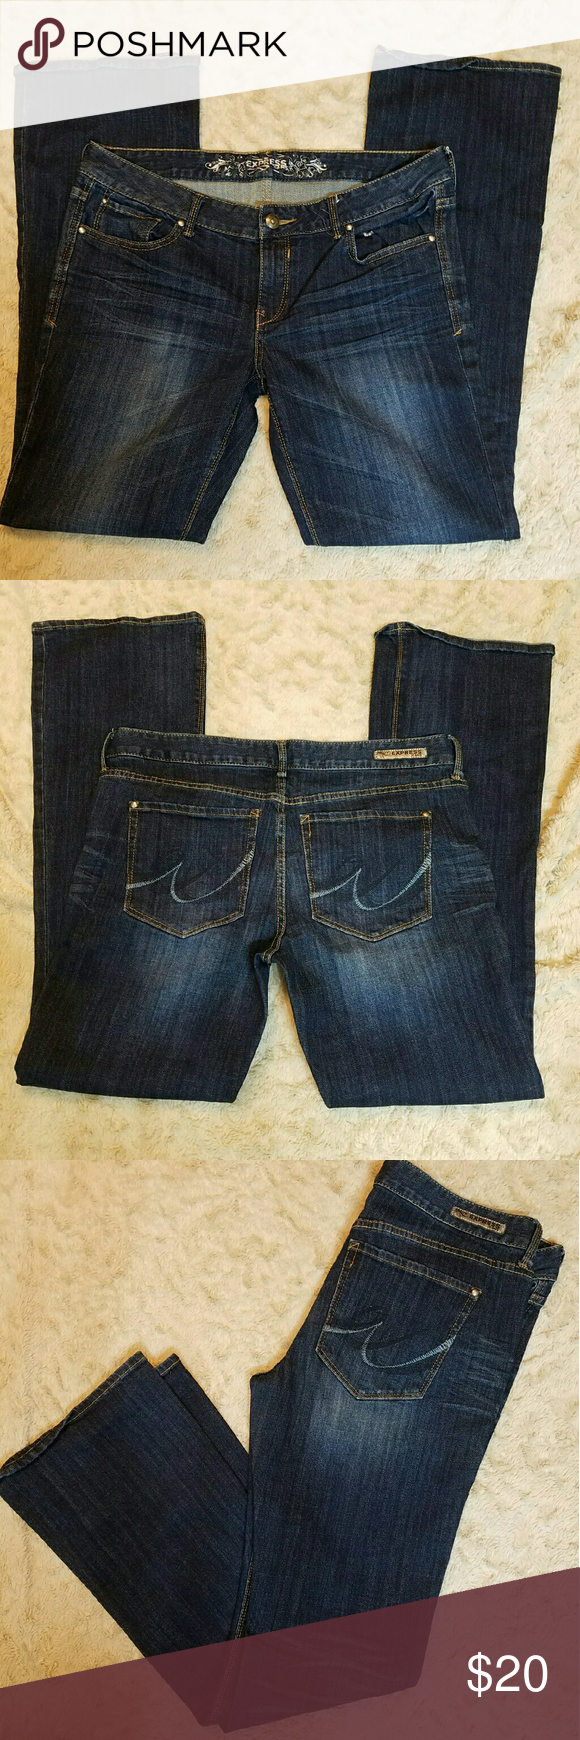 ??EXPRESS Bootcut JEANS ?? Dark blue jeans with a medium wash. These are bootcut. Express Jeans Boot Cut